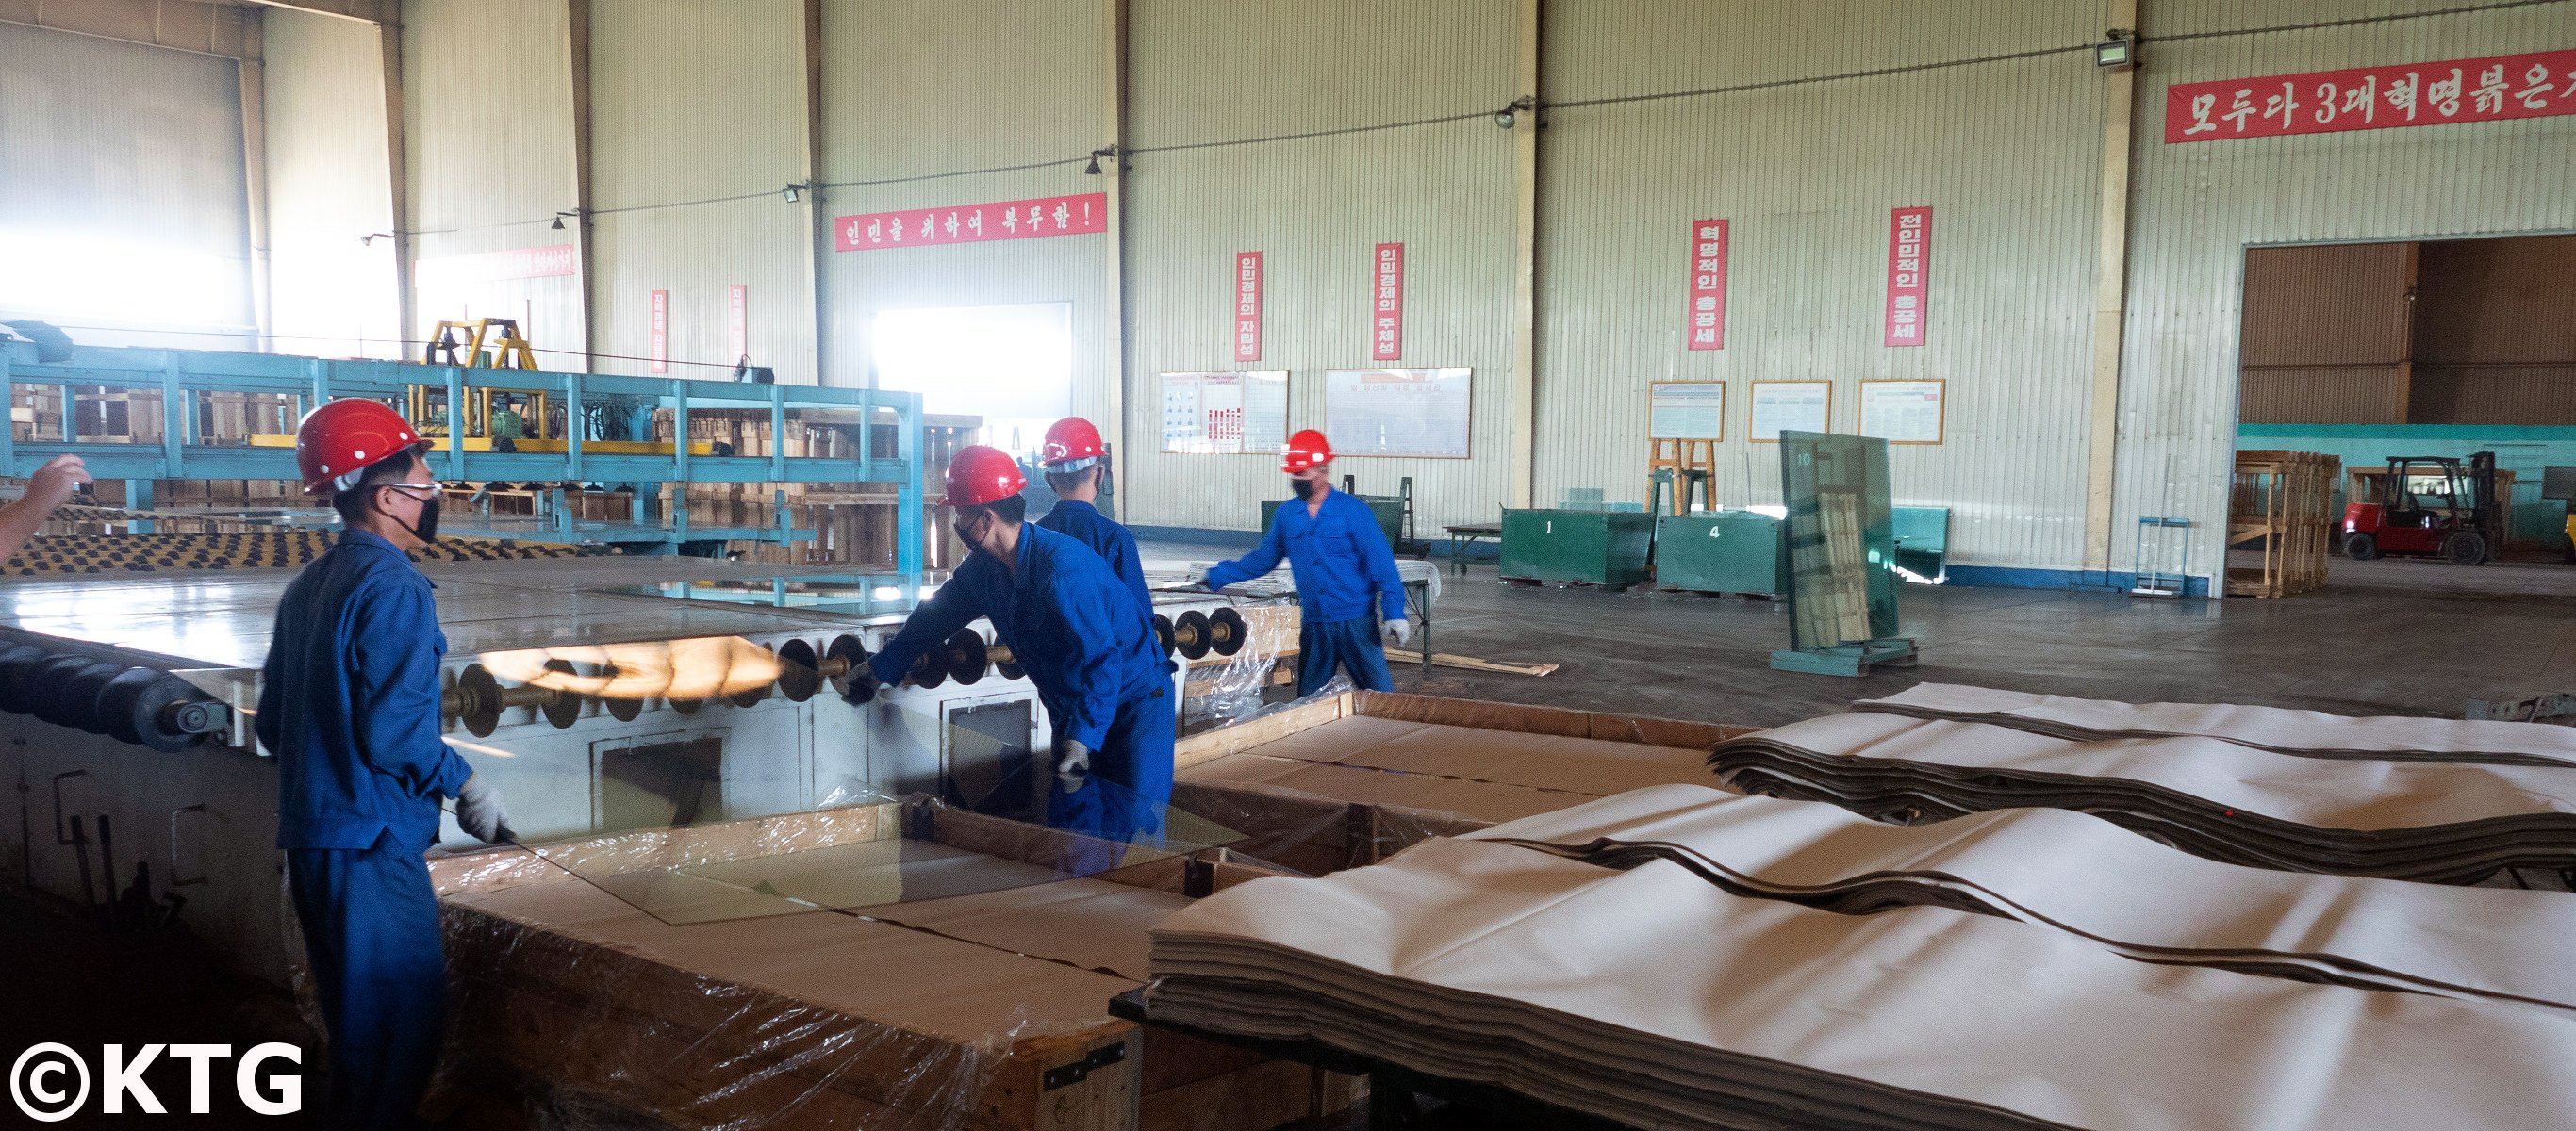 Taen glass manufacturing factory near Nampo city in North Korea (Democratic People's Republic of Korea). Trip arranged by KTG Tours